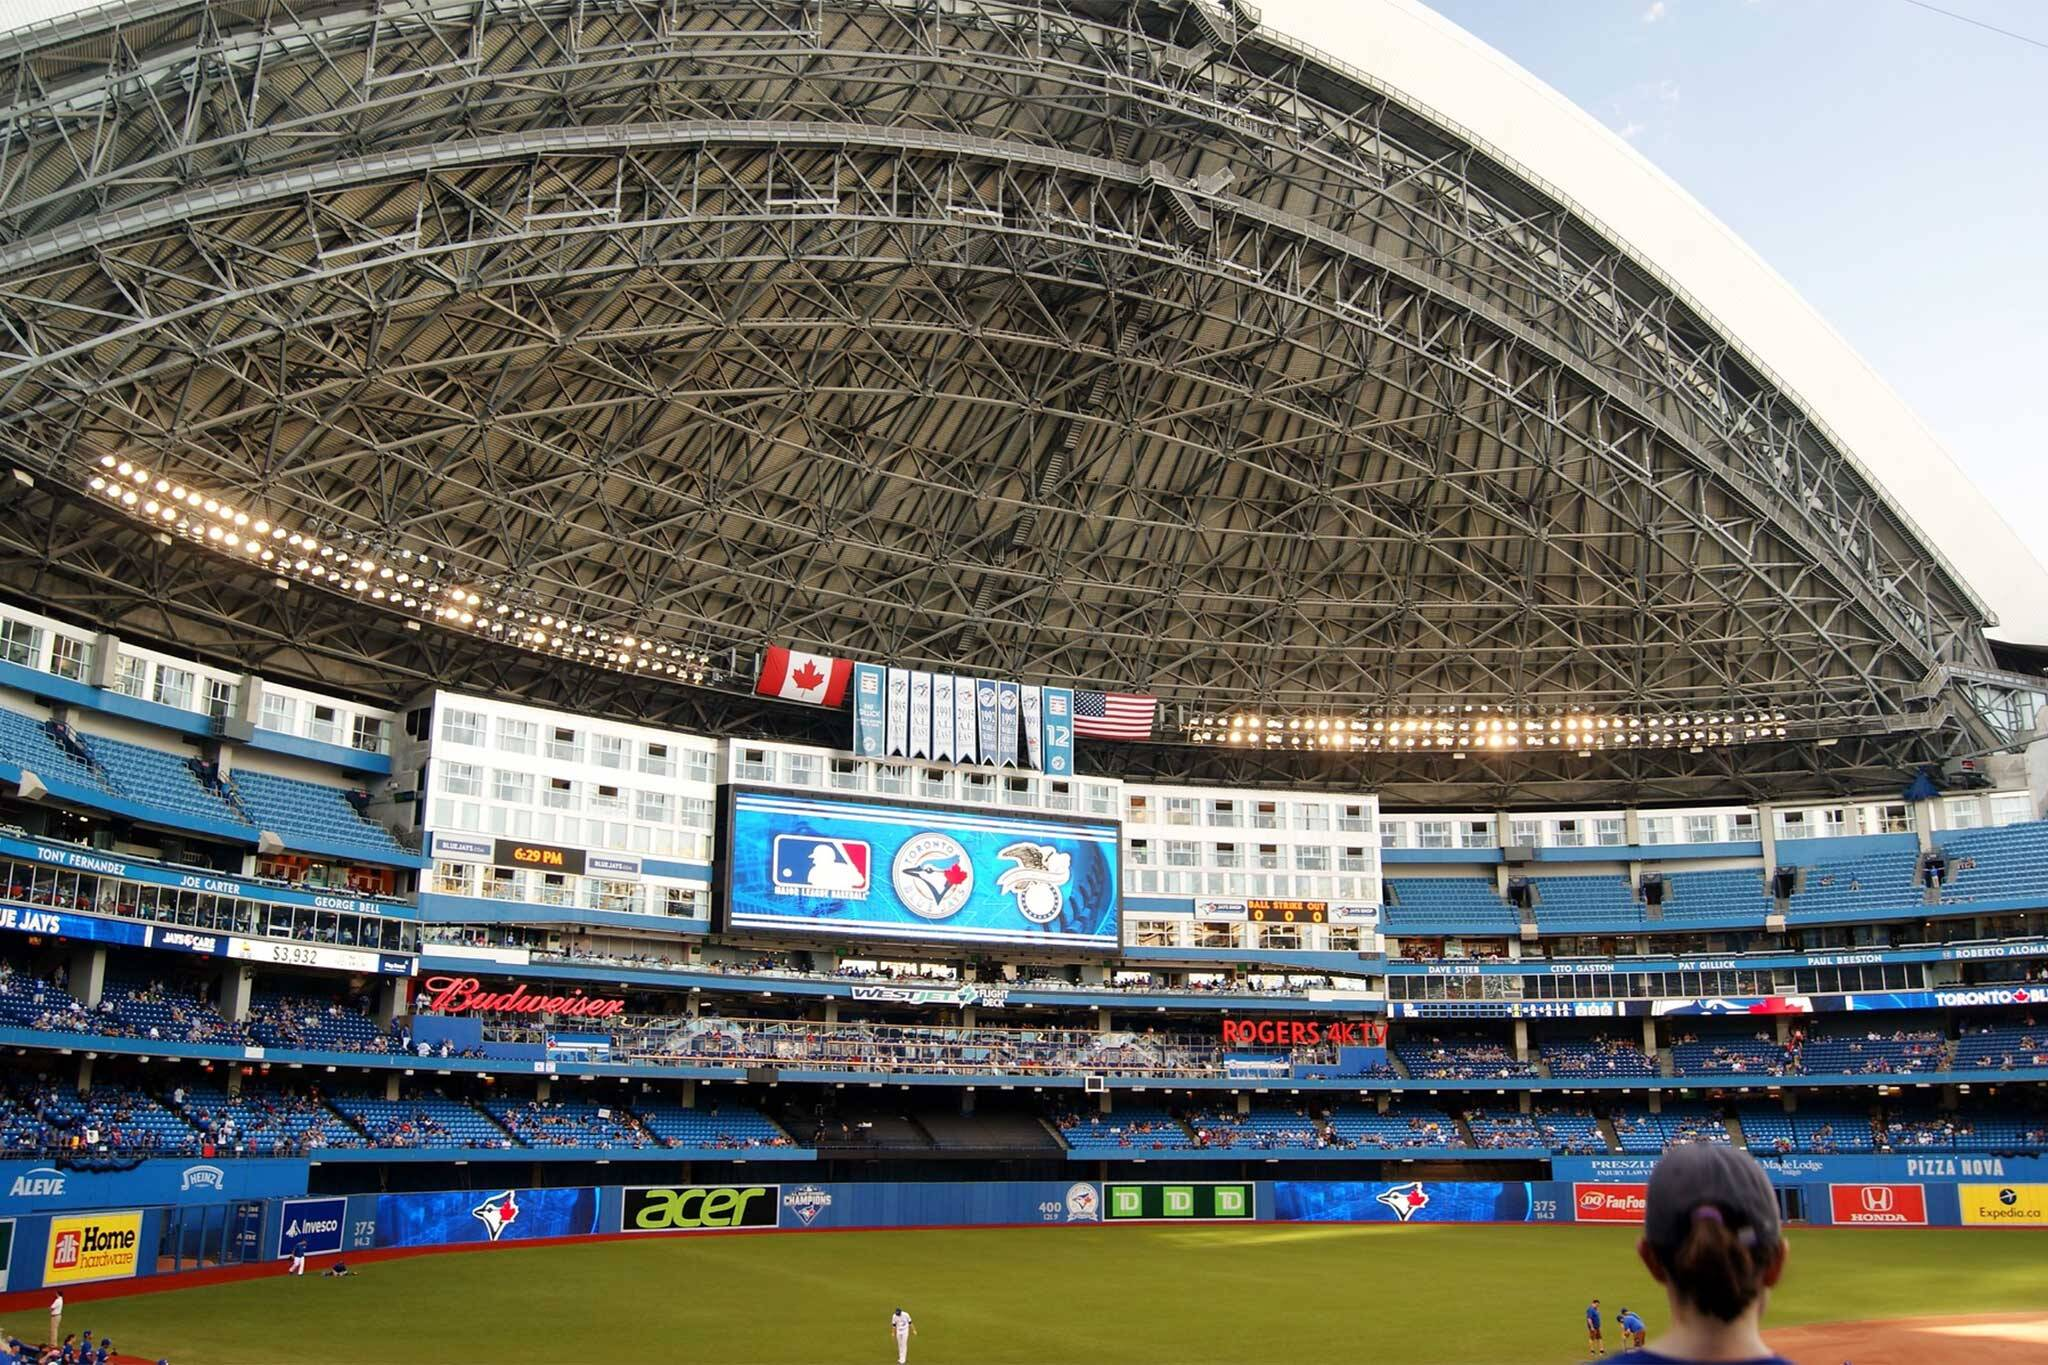 Plans To Redevelop The Rogers Centre In Toronto Gain Traction